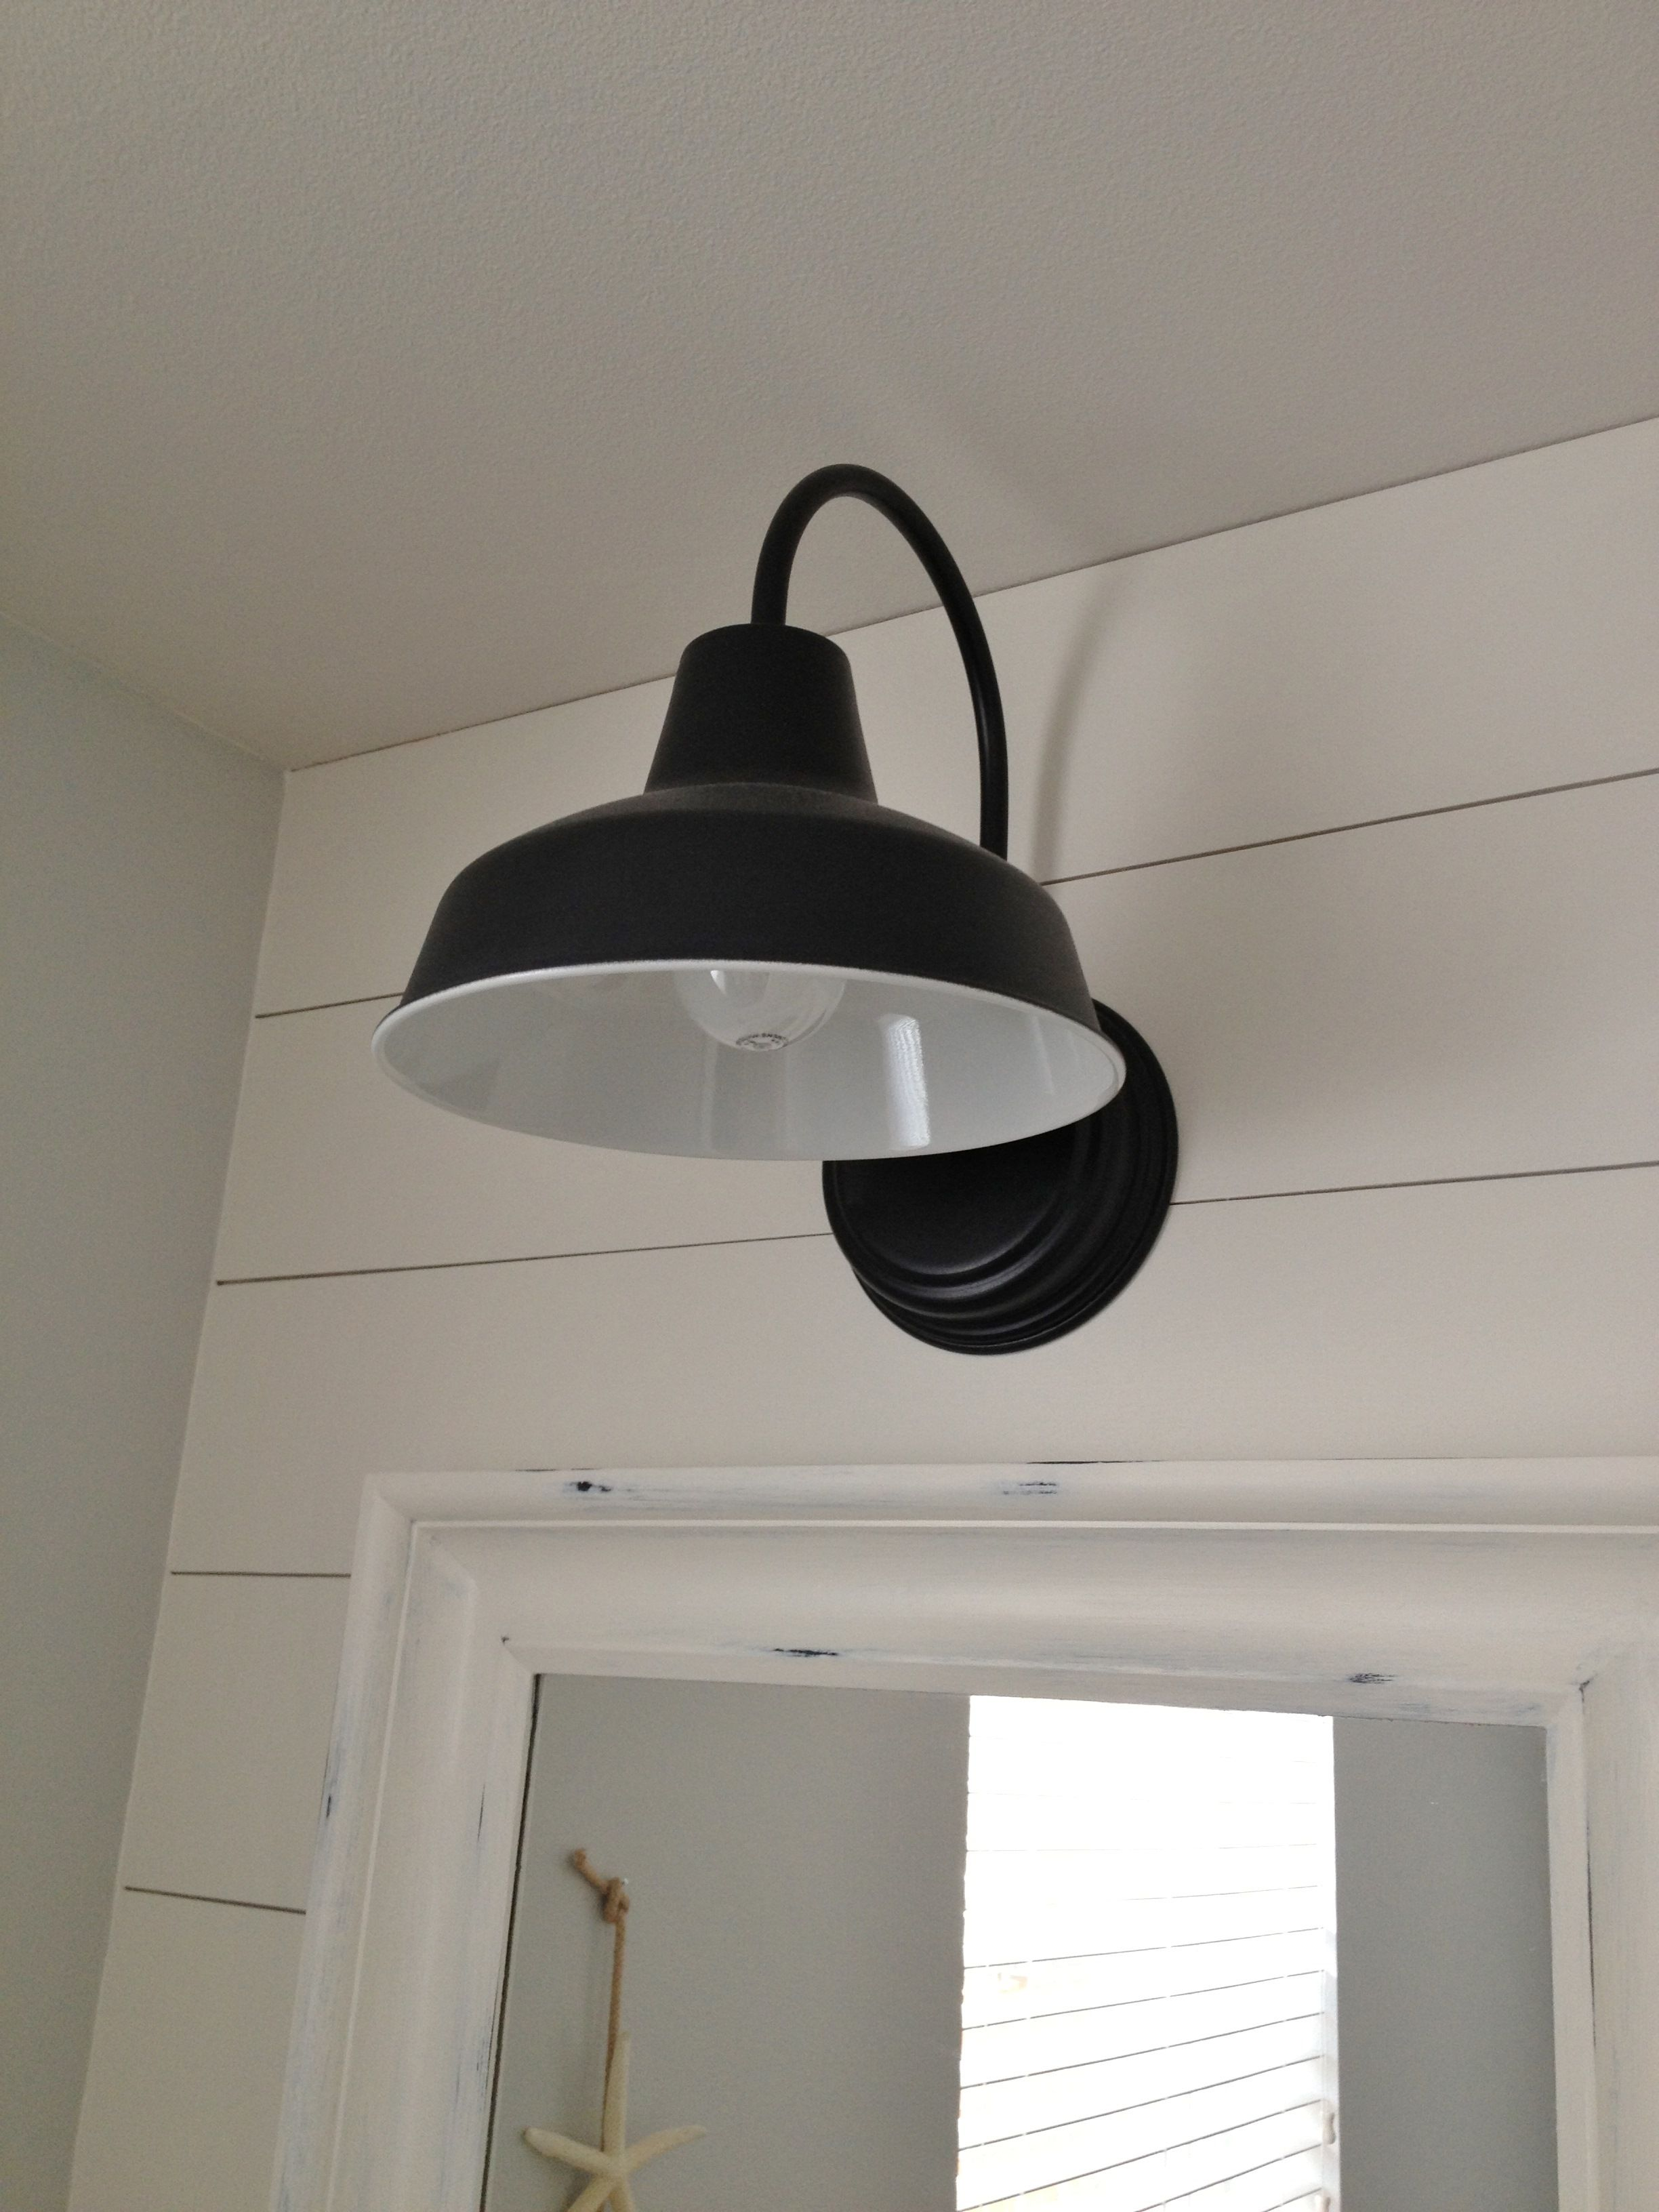 Wall Sconces For Basement : Barn Wall Sconce Lends Farmhouse Look to Powder Room Remake Blog BarnLightElectric.com ...